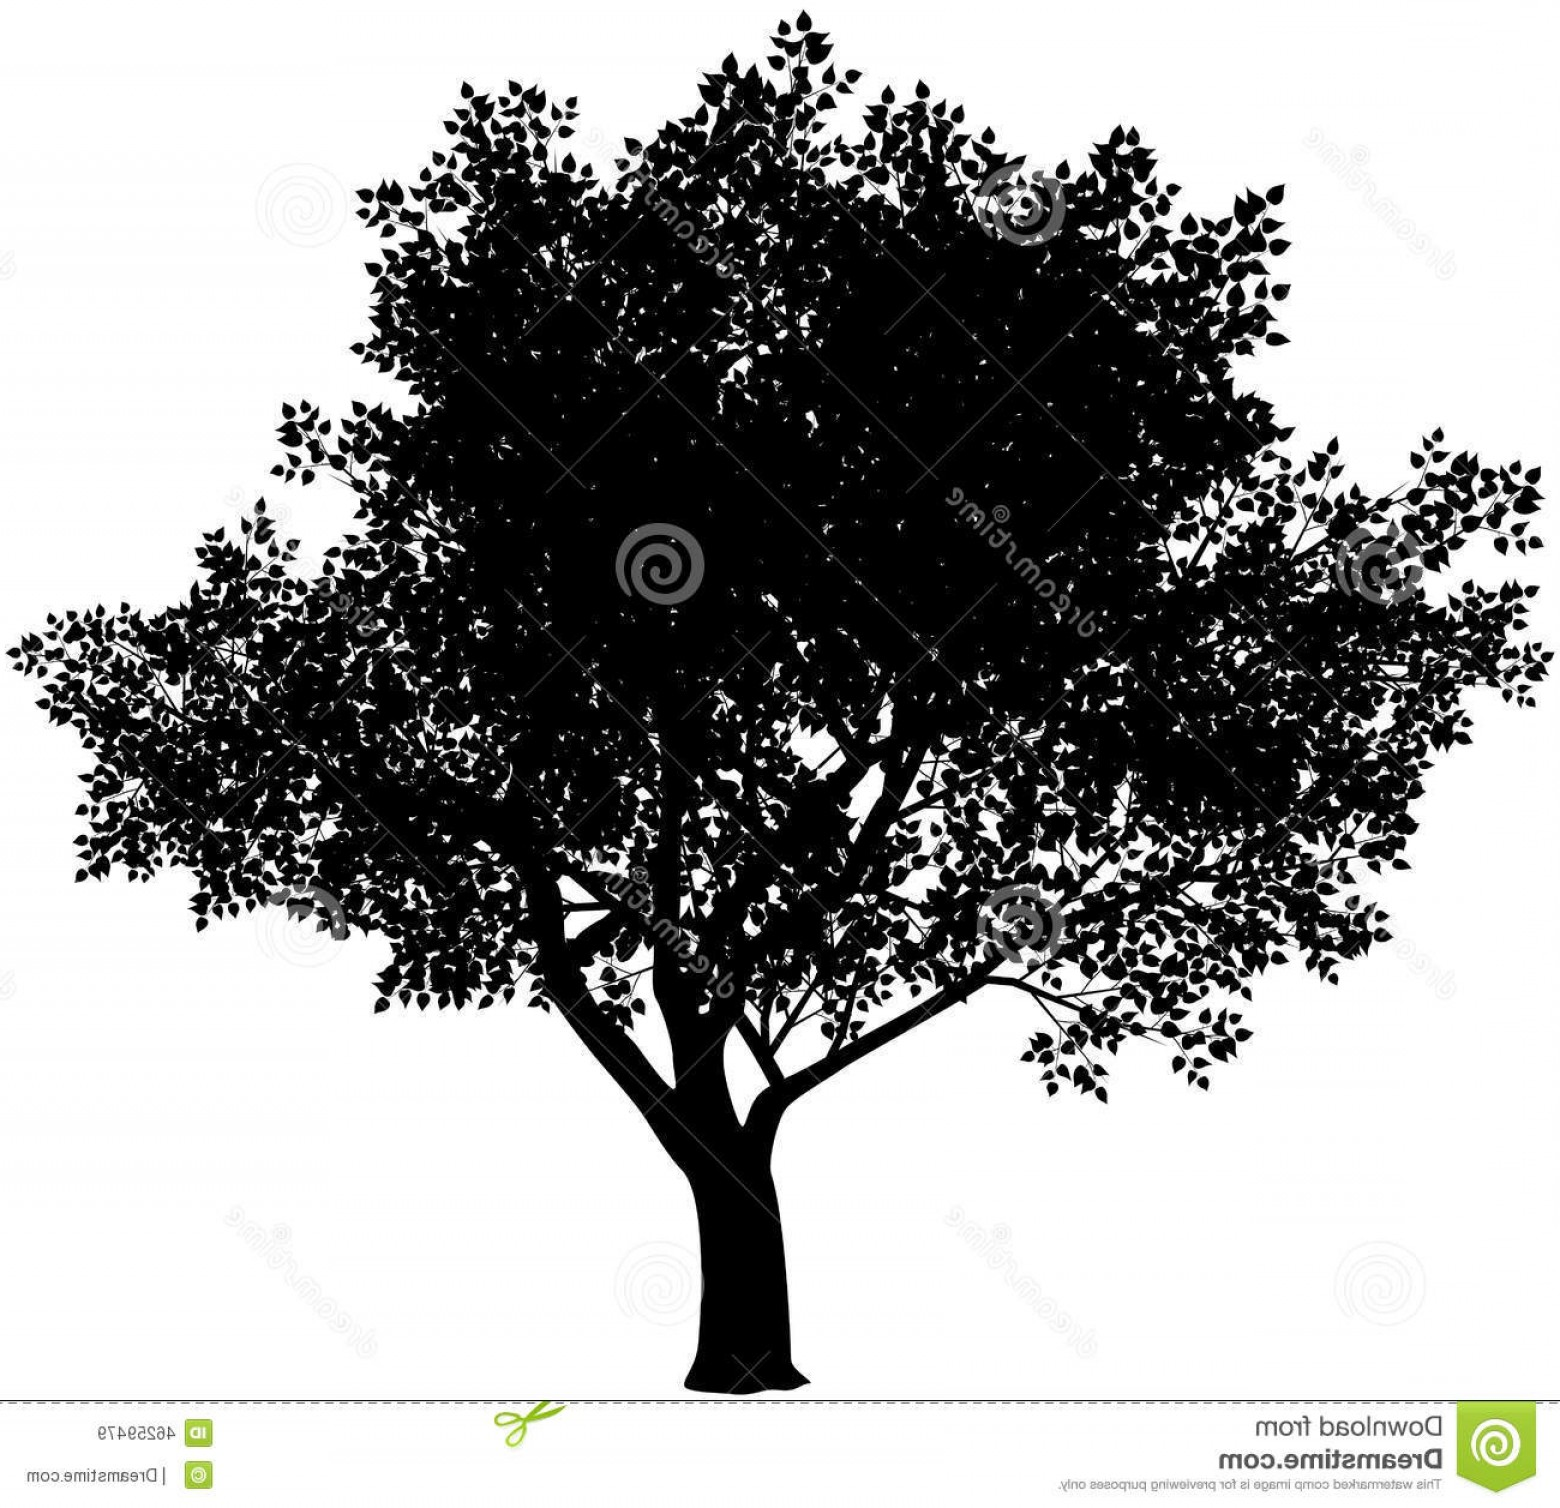 Oak Tree Silhouette Vector Graphics: Stock Illustration Tree Silhouette Vector Black White Eps Gradients Free Image